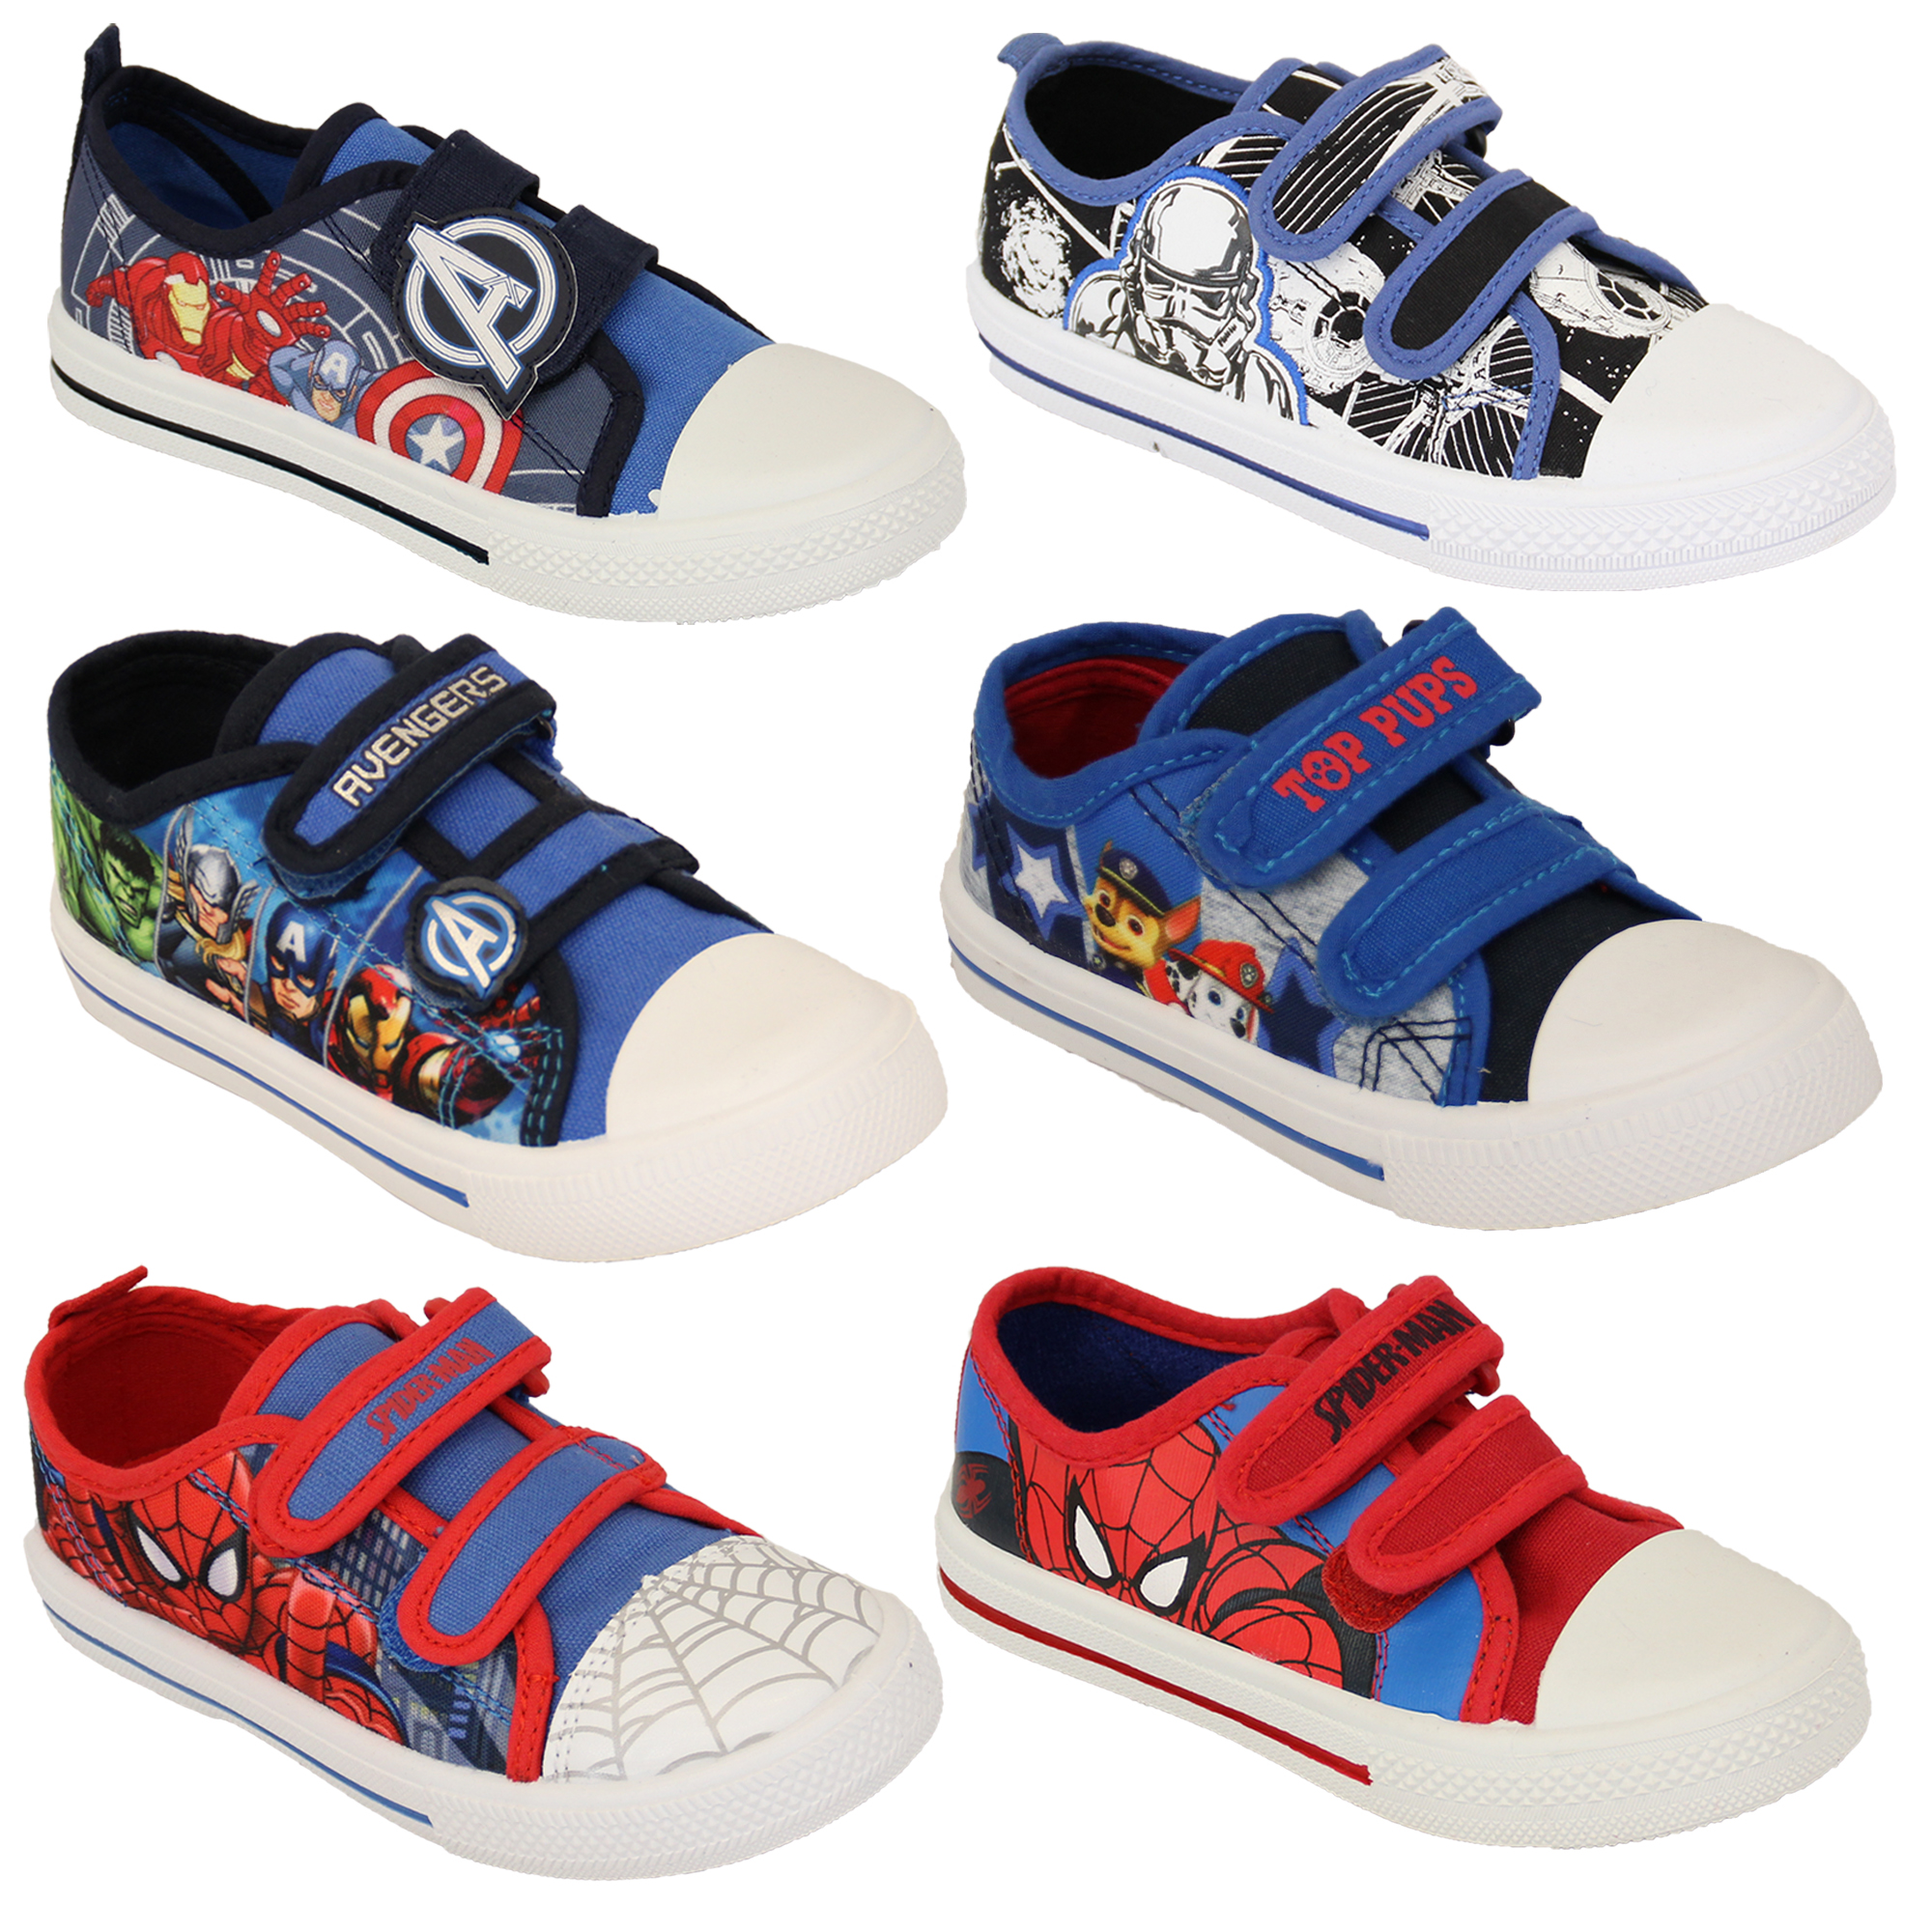 5d8b64d6ed9fd Details about Boys Avengers Spiderman Star Wars Trooper Trainers Kids Paw  Patrol Marvel Pumps